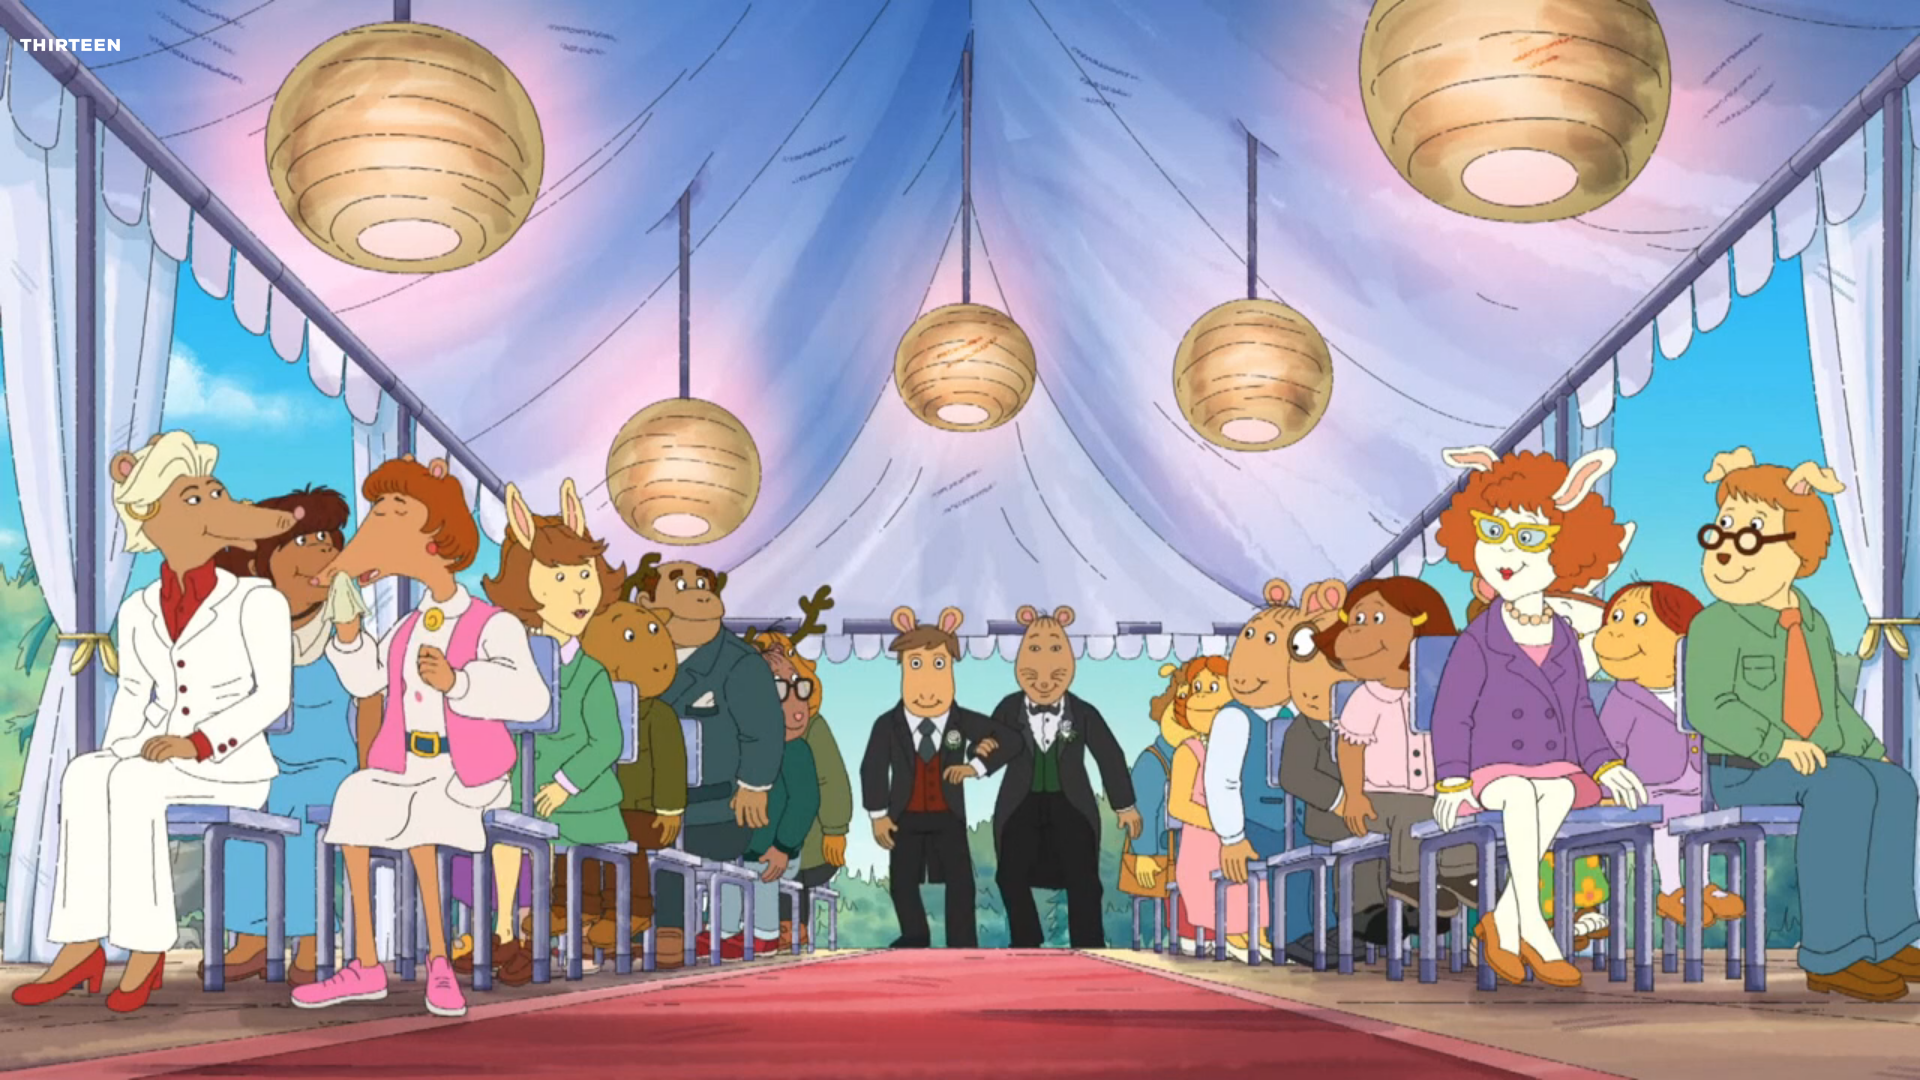 Arthur character Mr. Ratburn comes out as gay and gets married